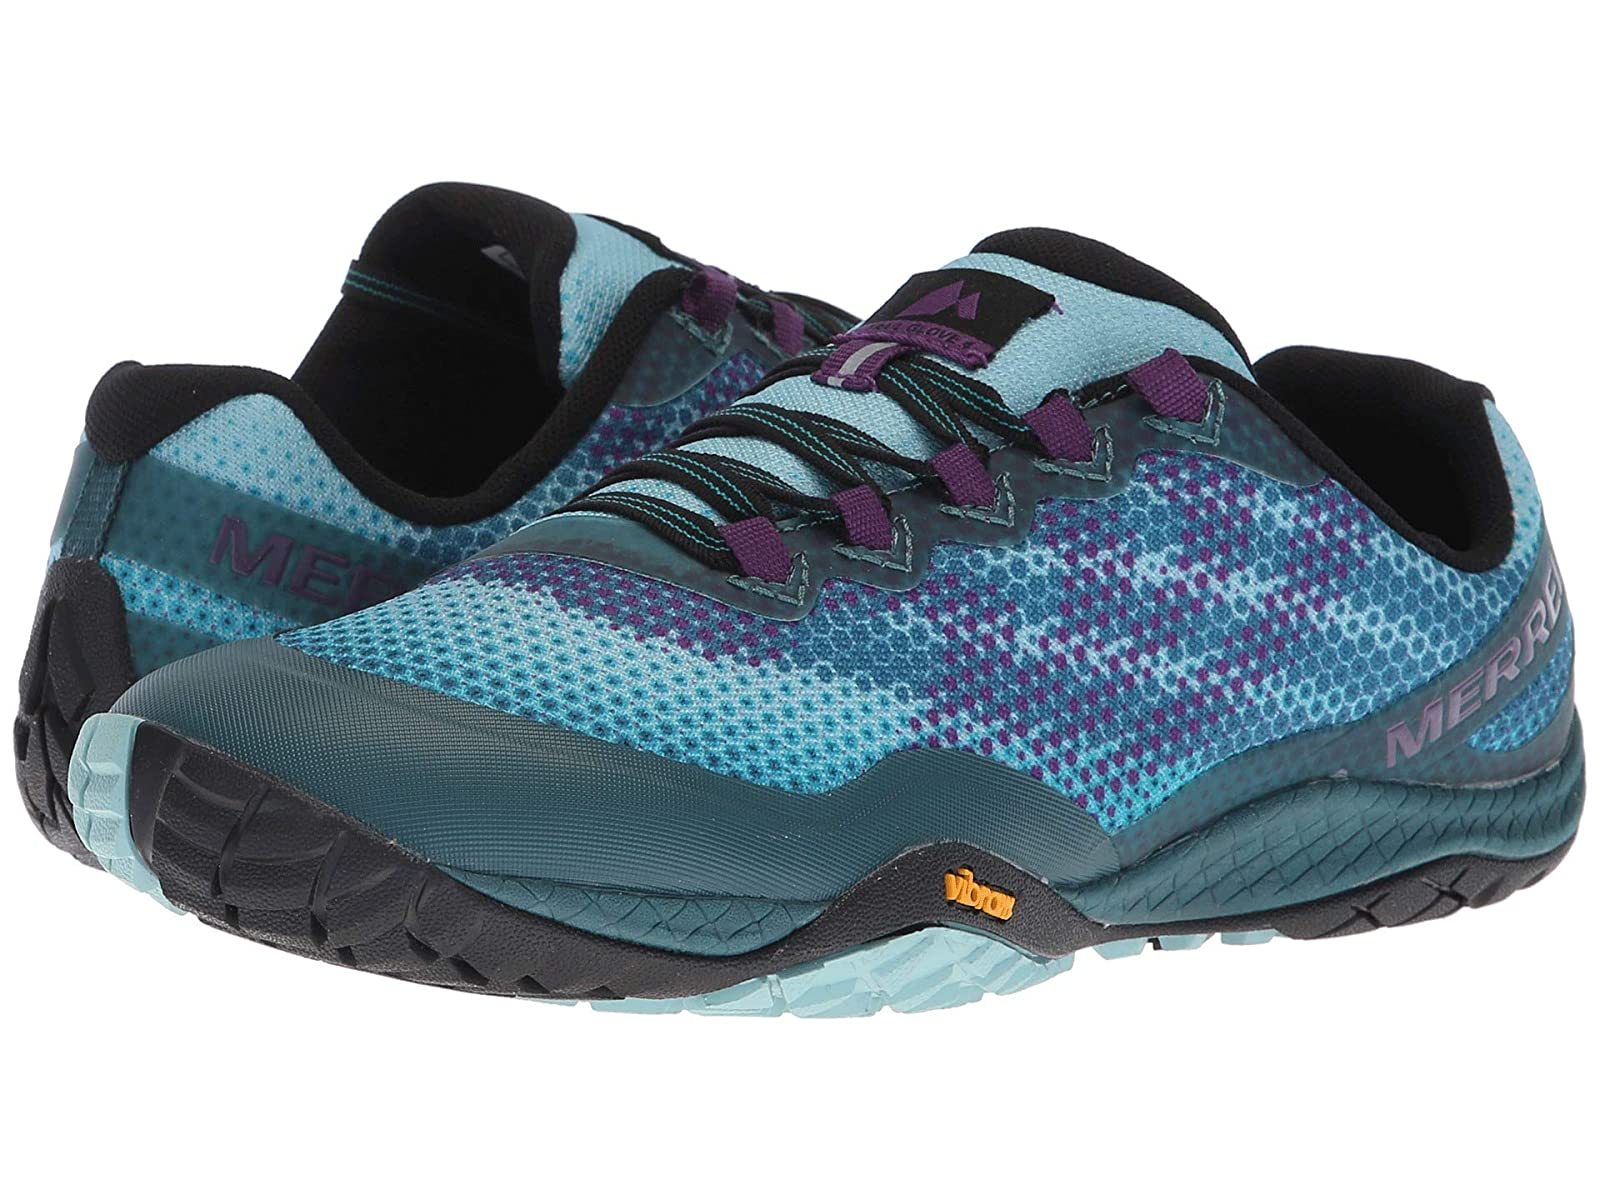 Merrell Trail Glove 4 ShieldAtmospheric grades have affordable shoes